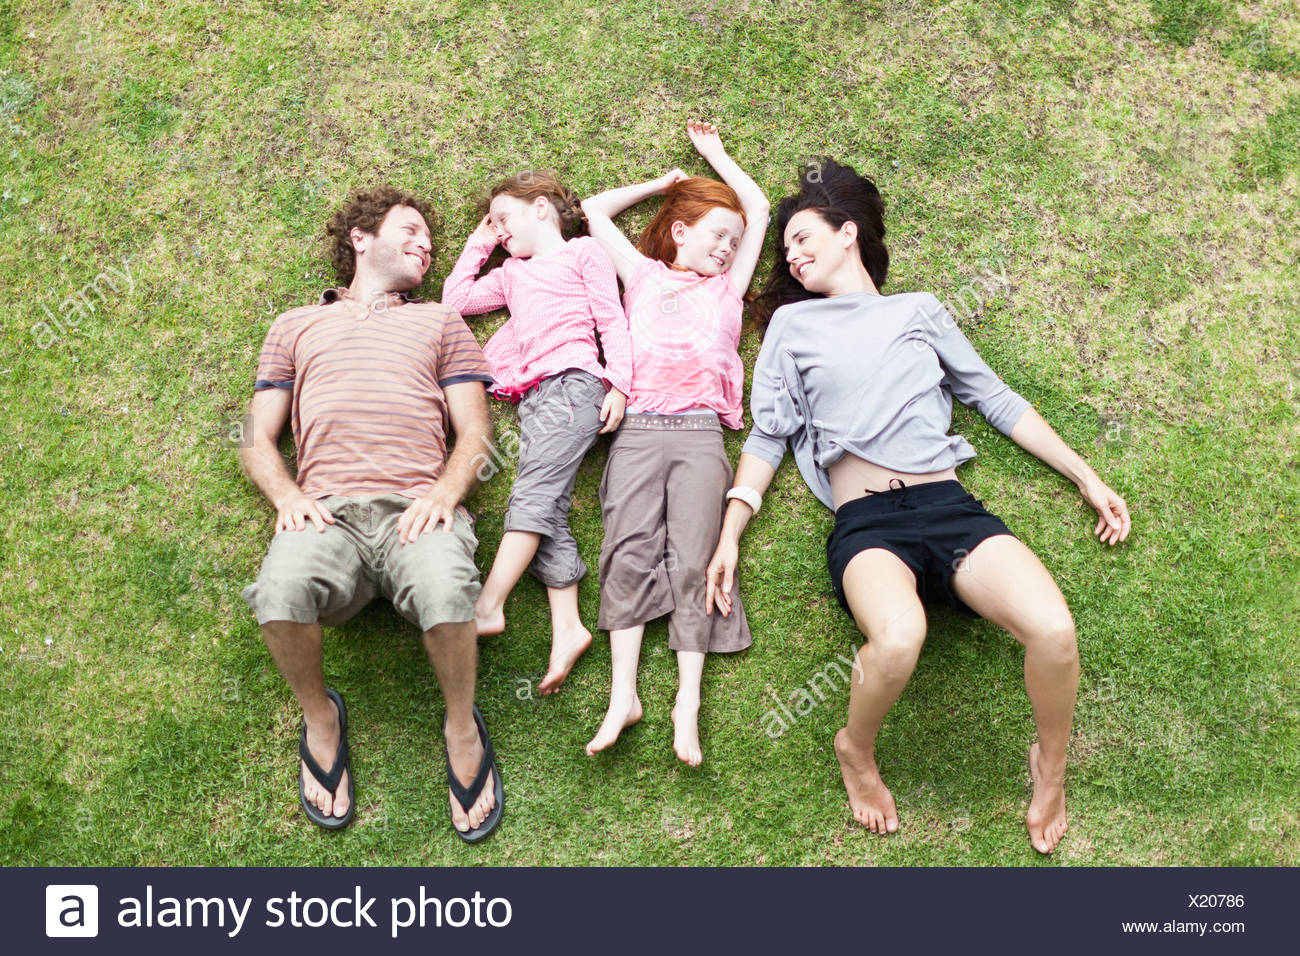 Family laying in grass together - Stock Image